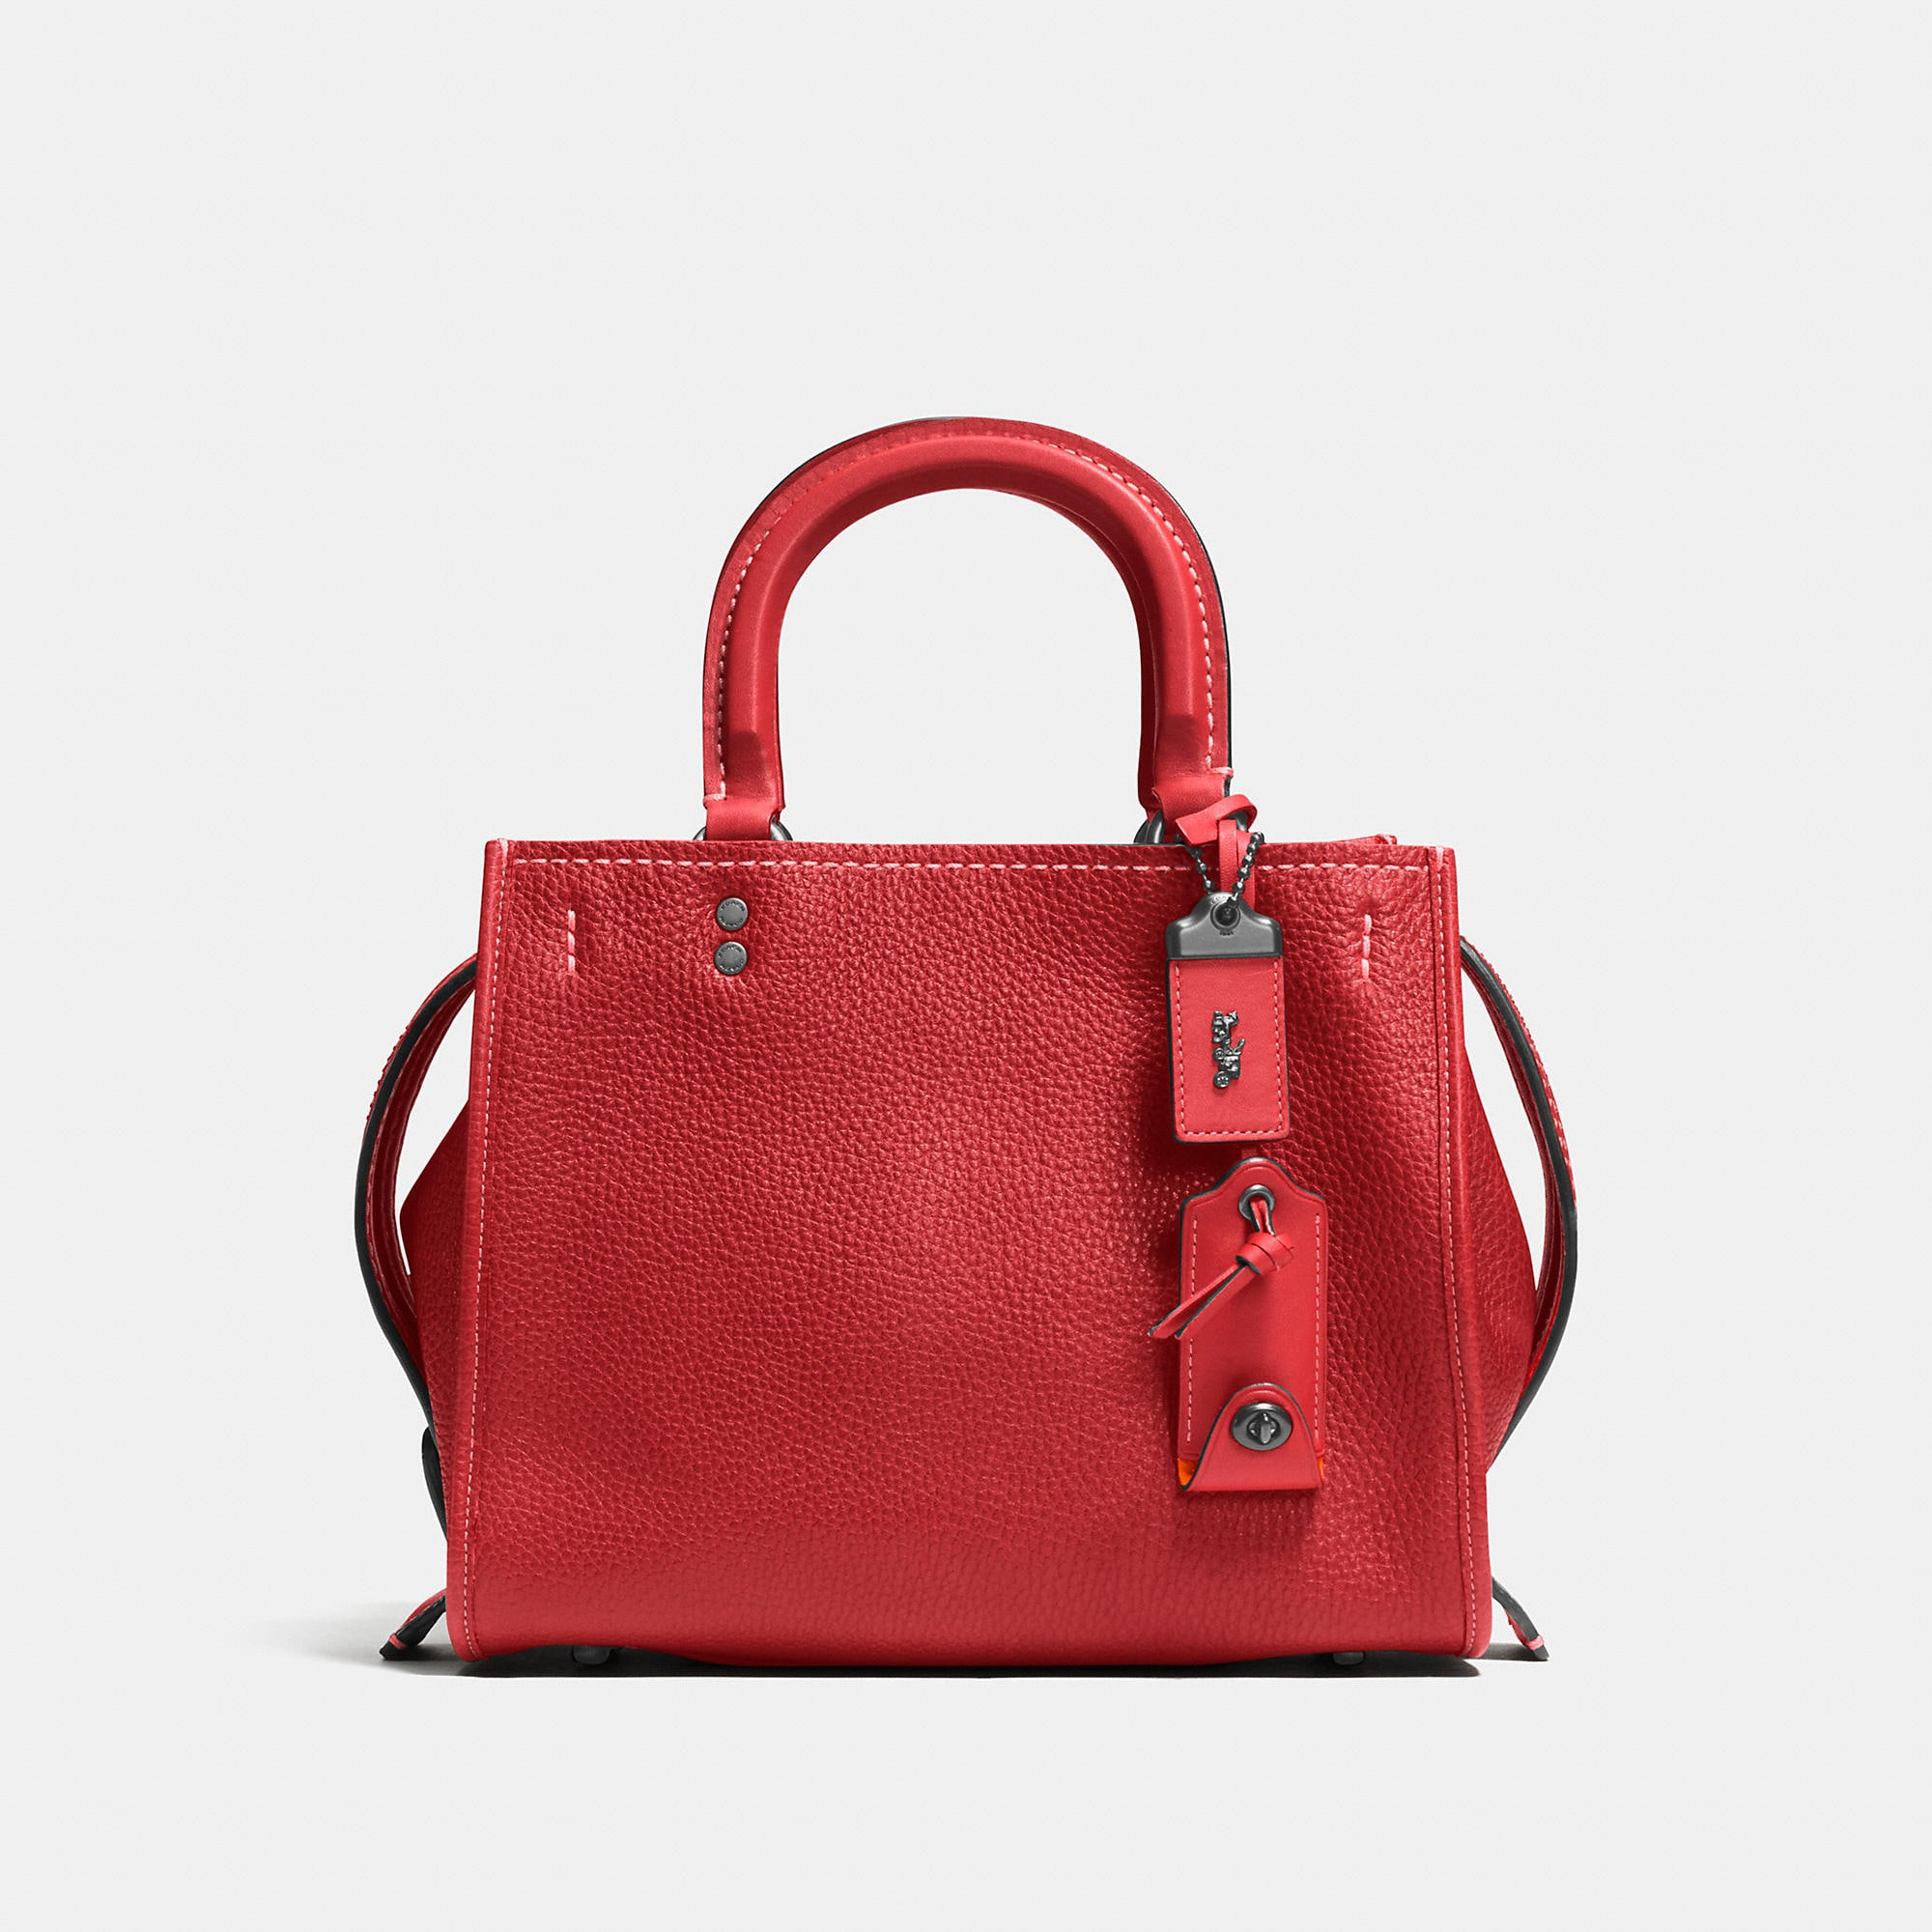 Coach Rogue Bag 25 In Glovetanned Pebble Leather